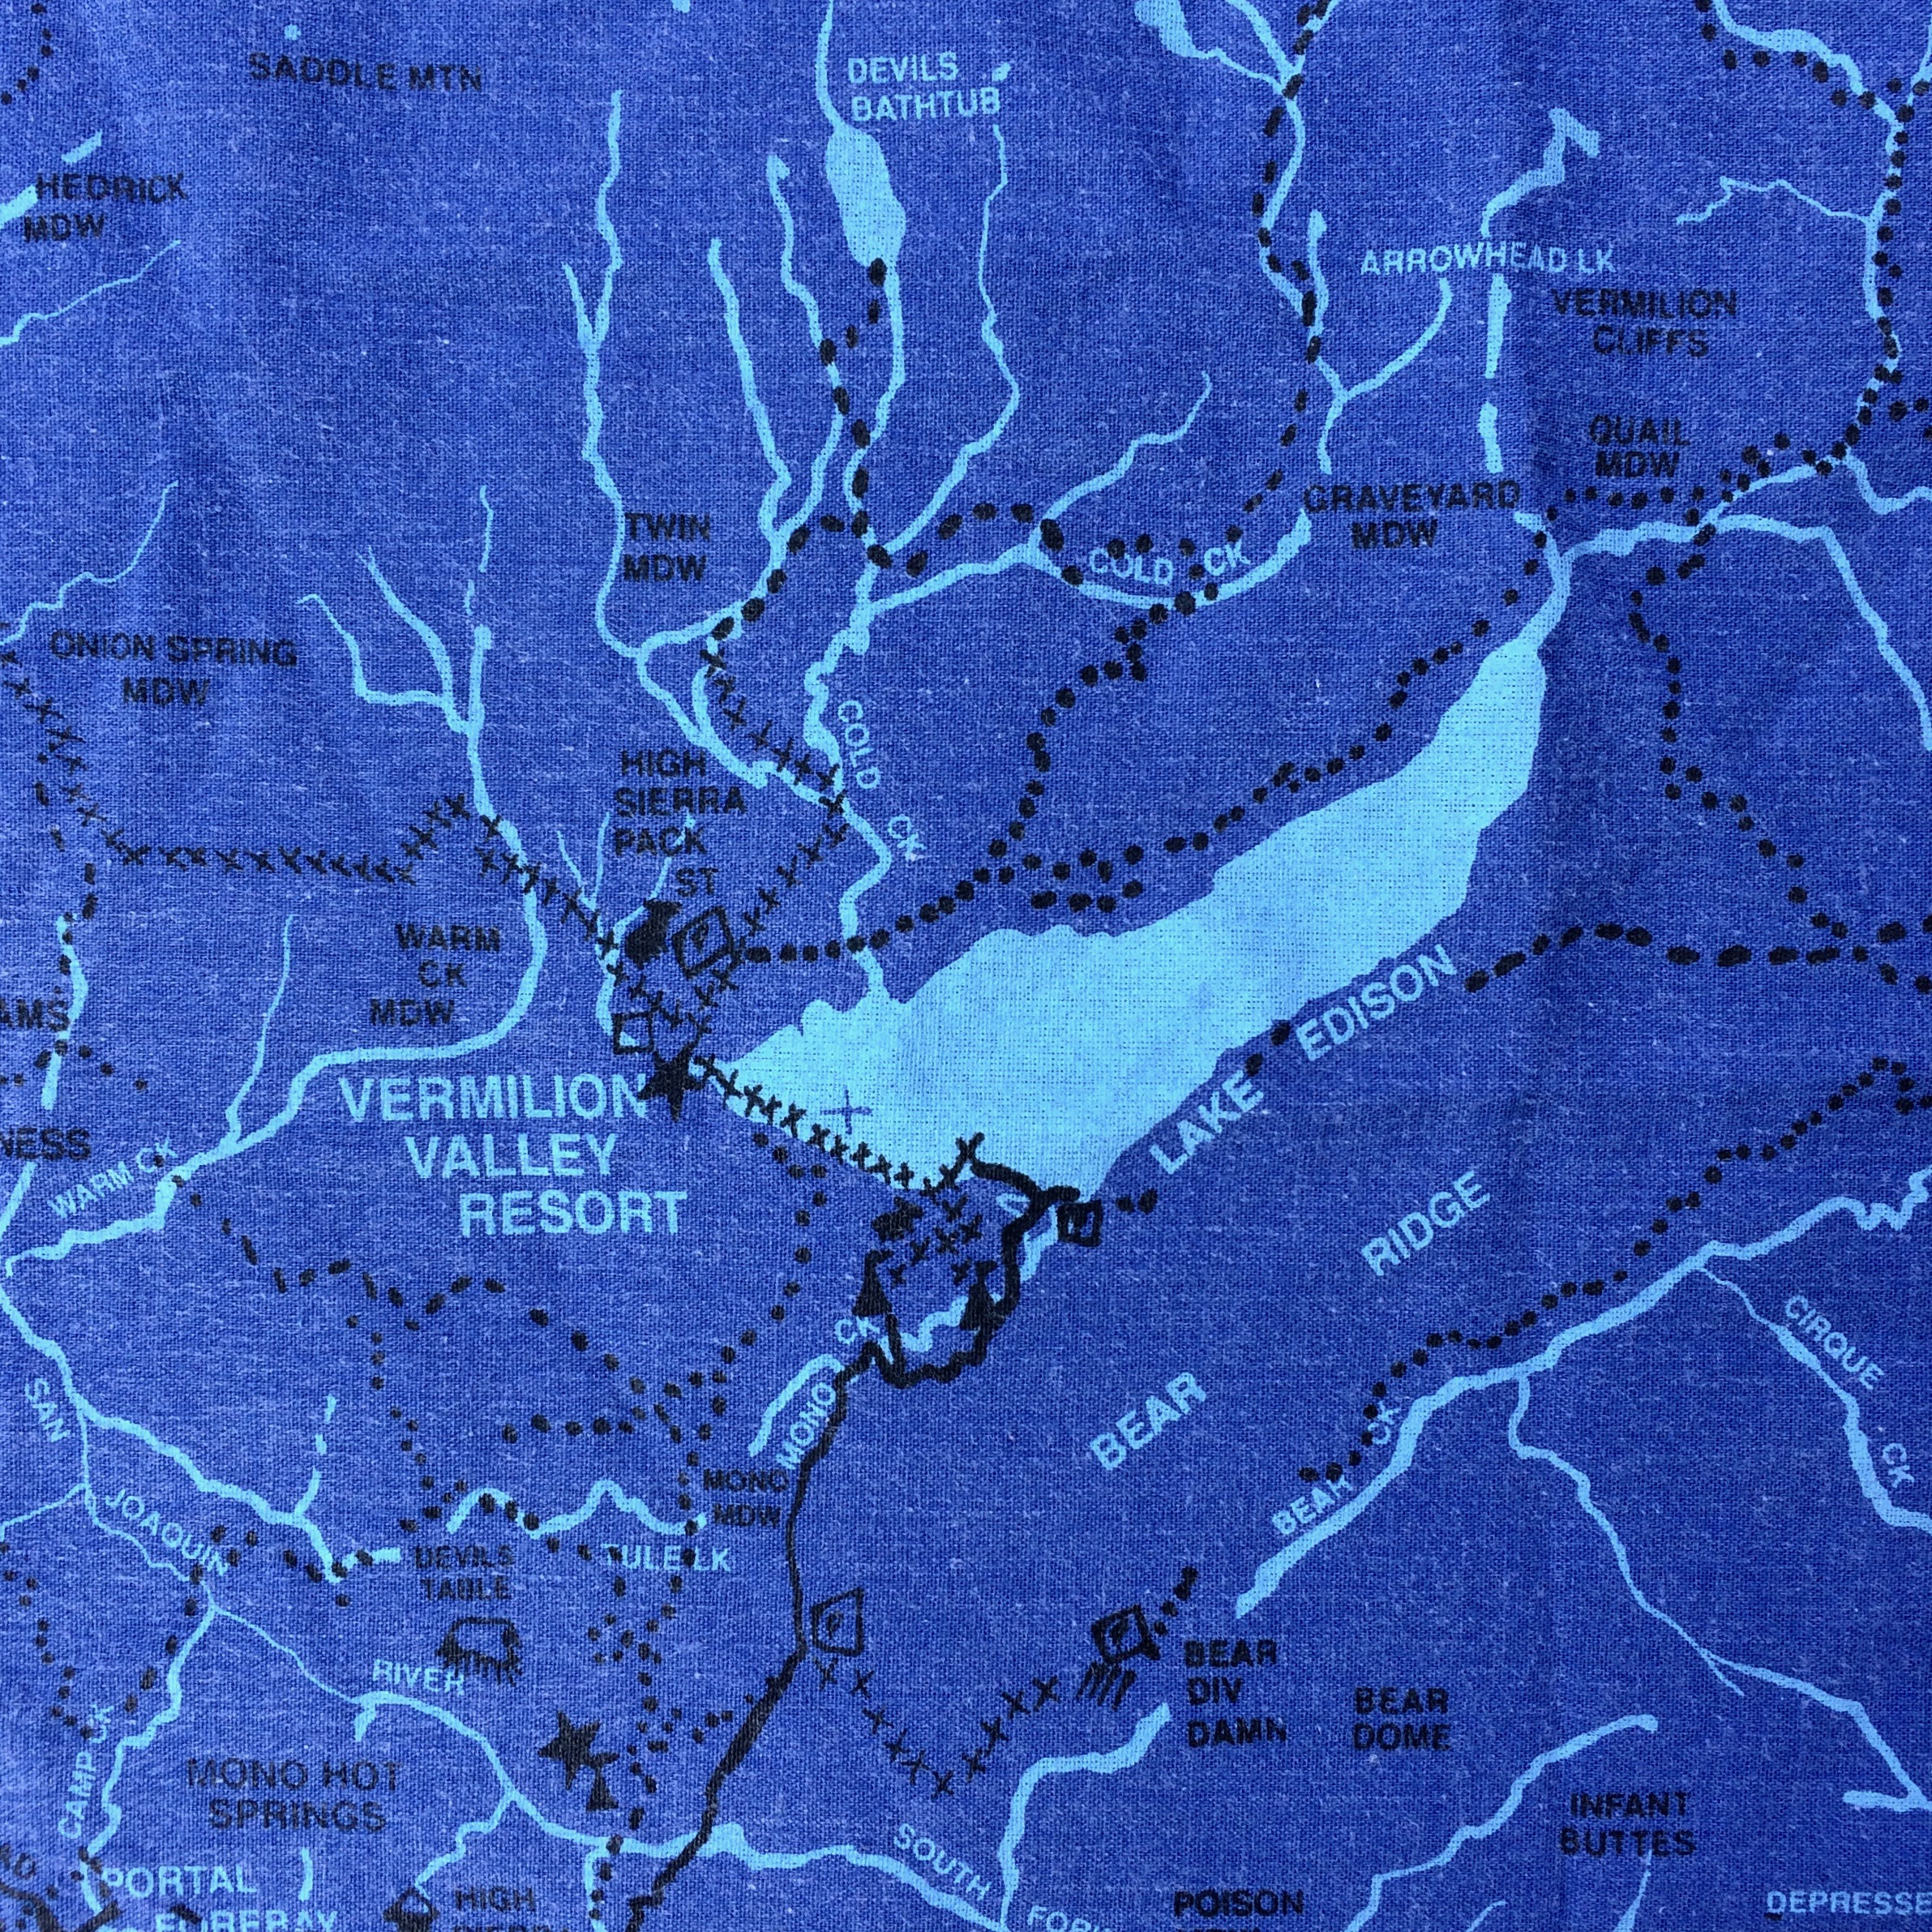 You can purchase a hankie with a map of the Vermillion Valley Resort on Edison Lake.